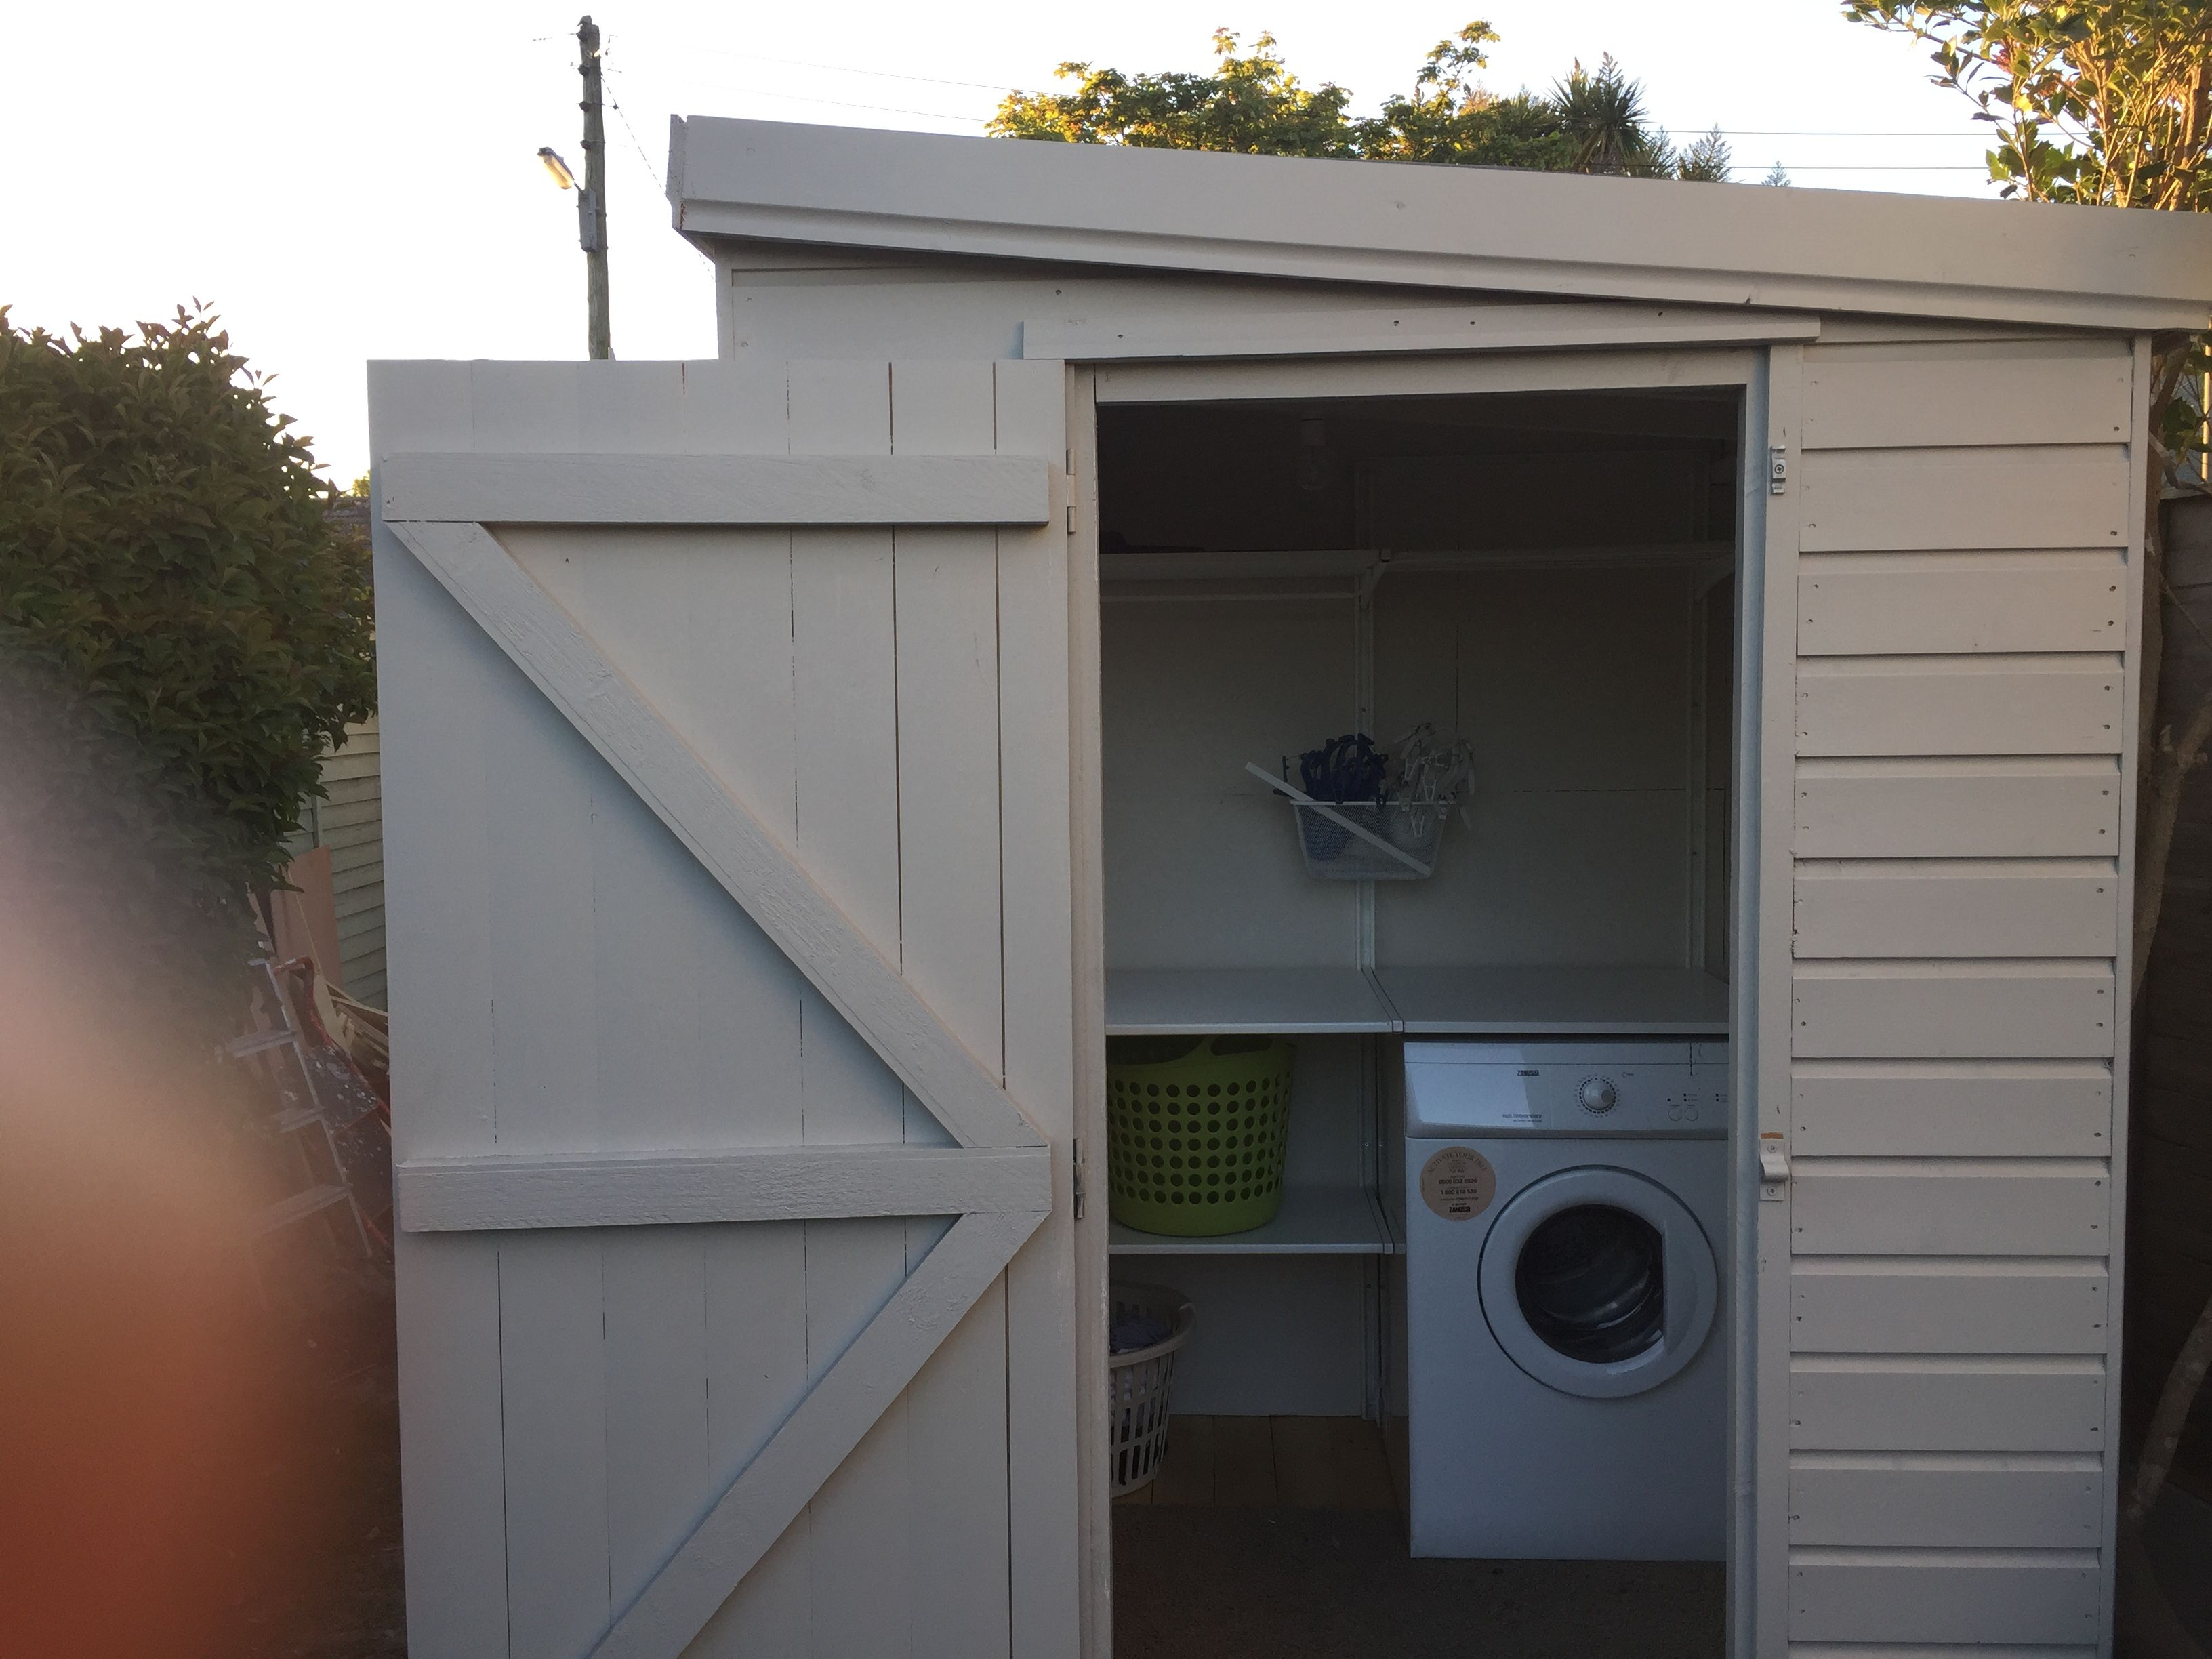 Laundry Room Shed With Images